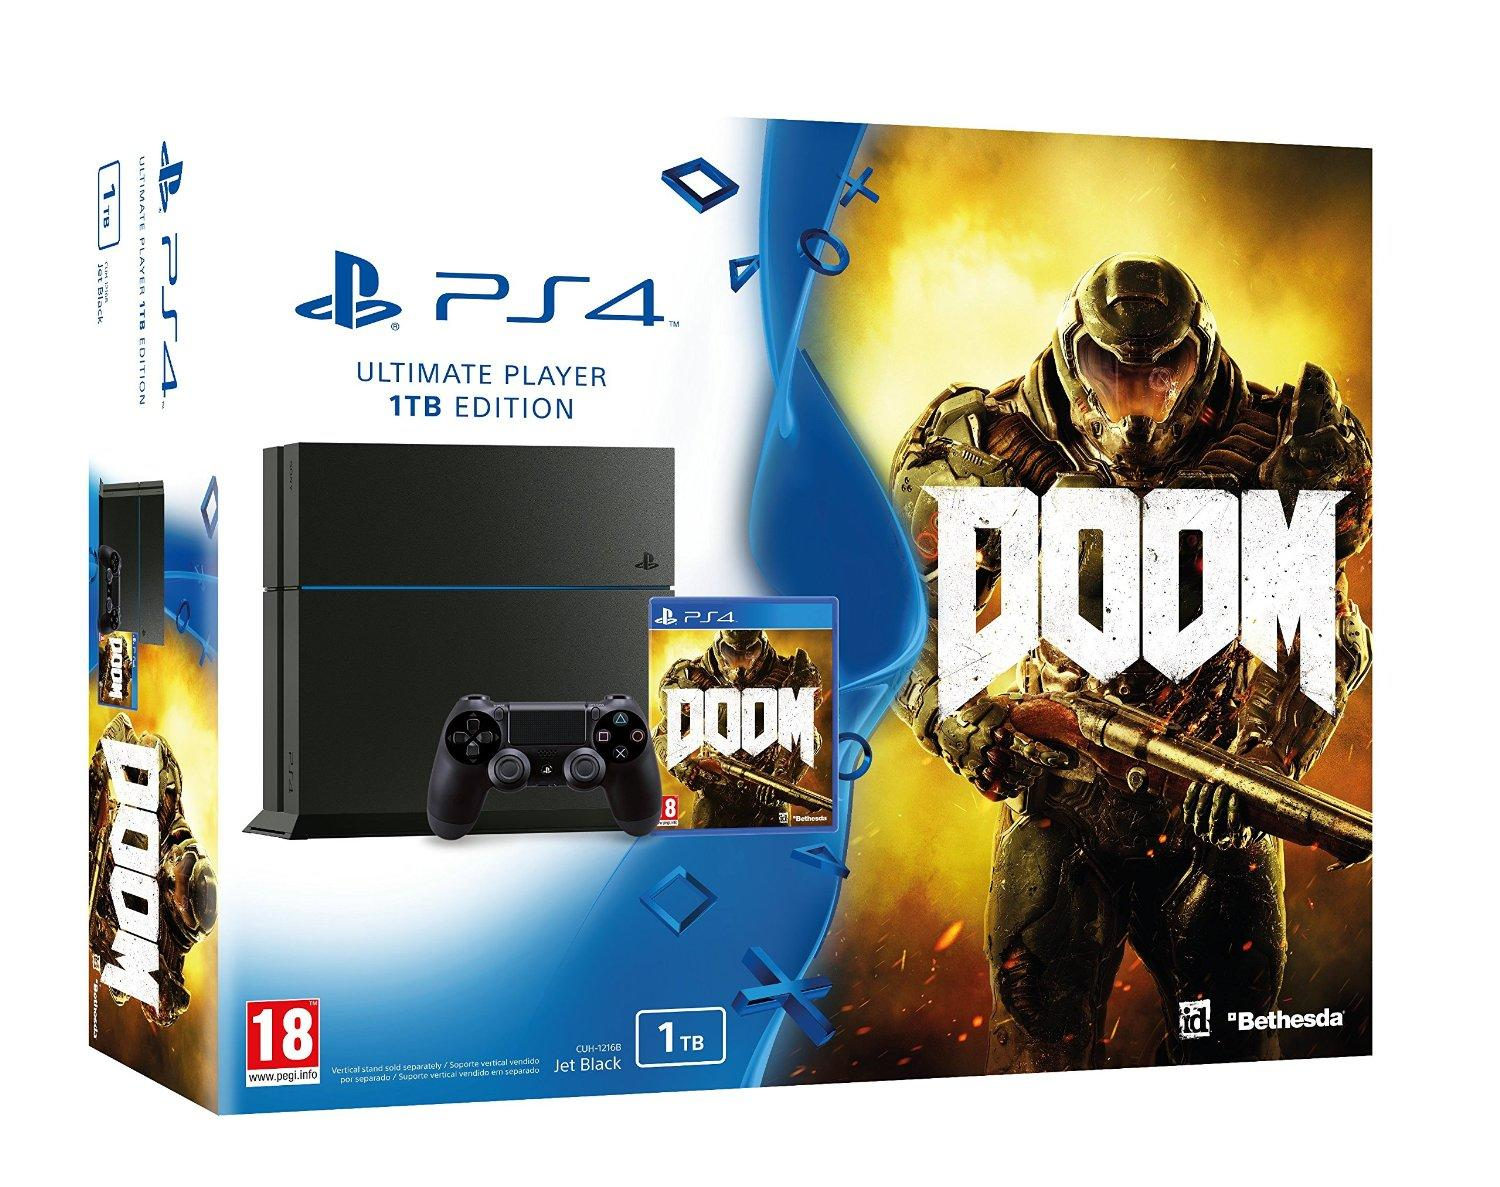 Pack Sony PS4 1TB + Juego DOOM